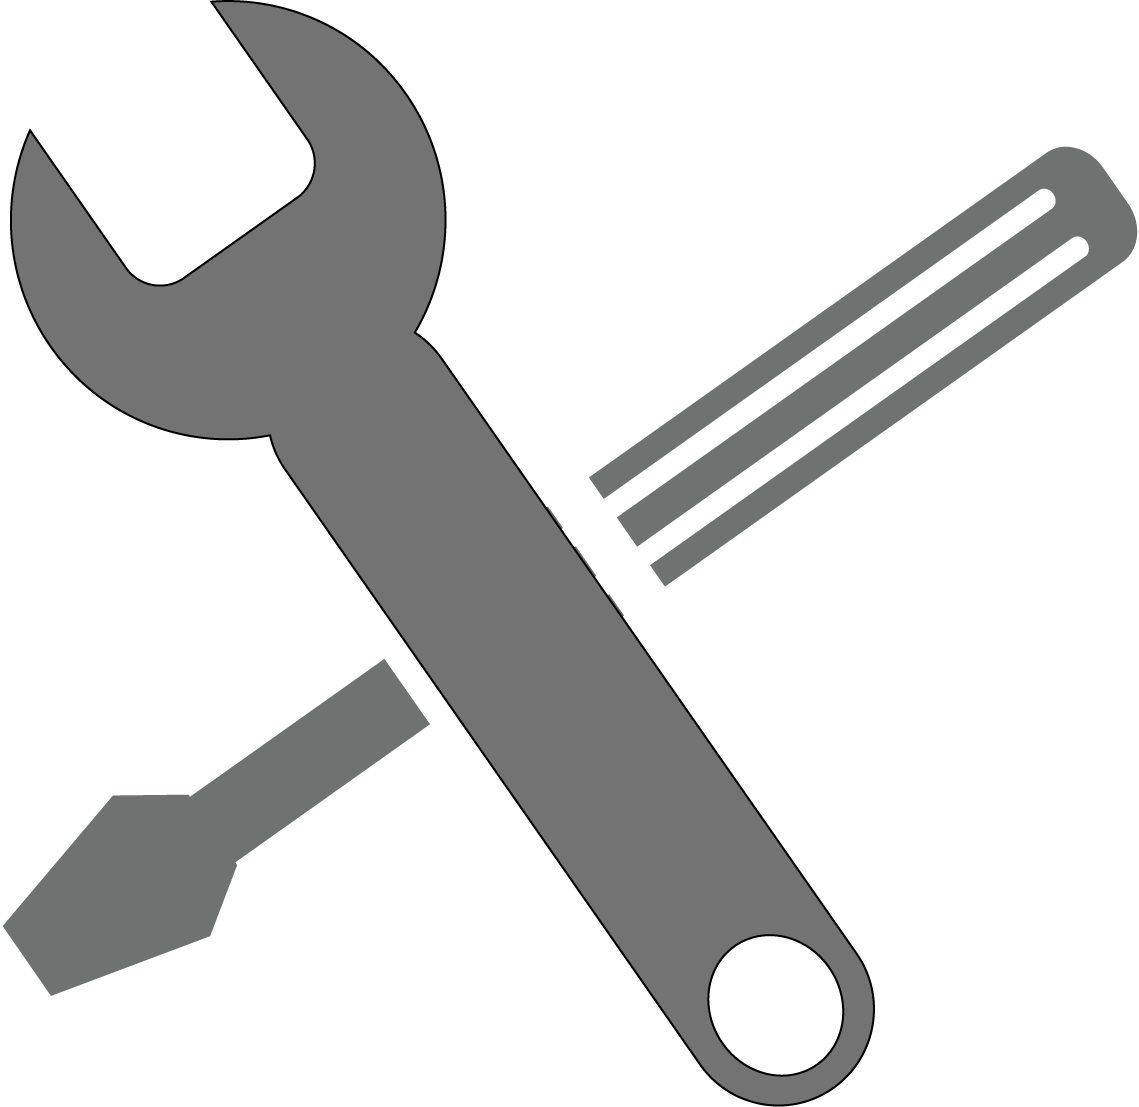 Wrench PNG - 10862